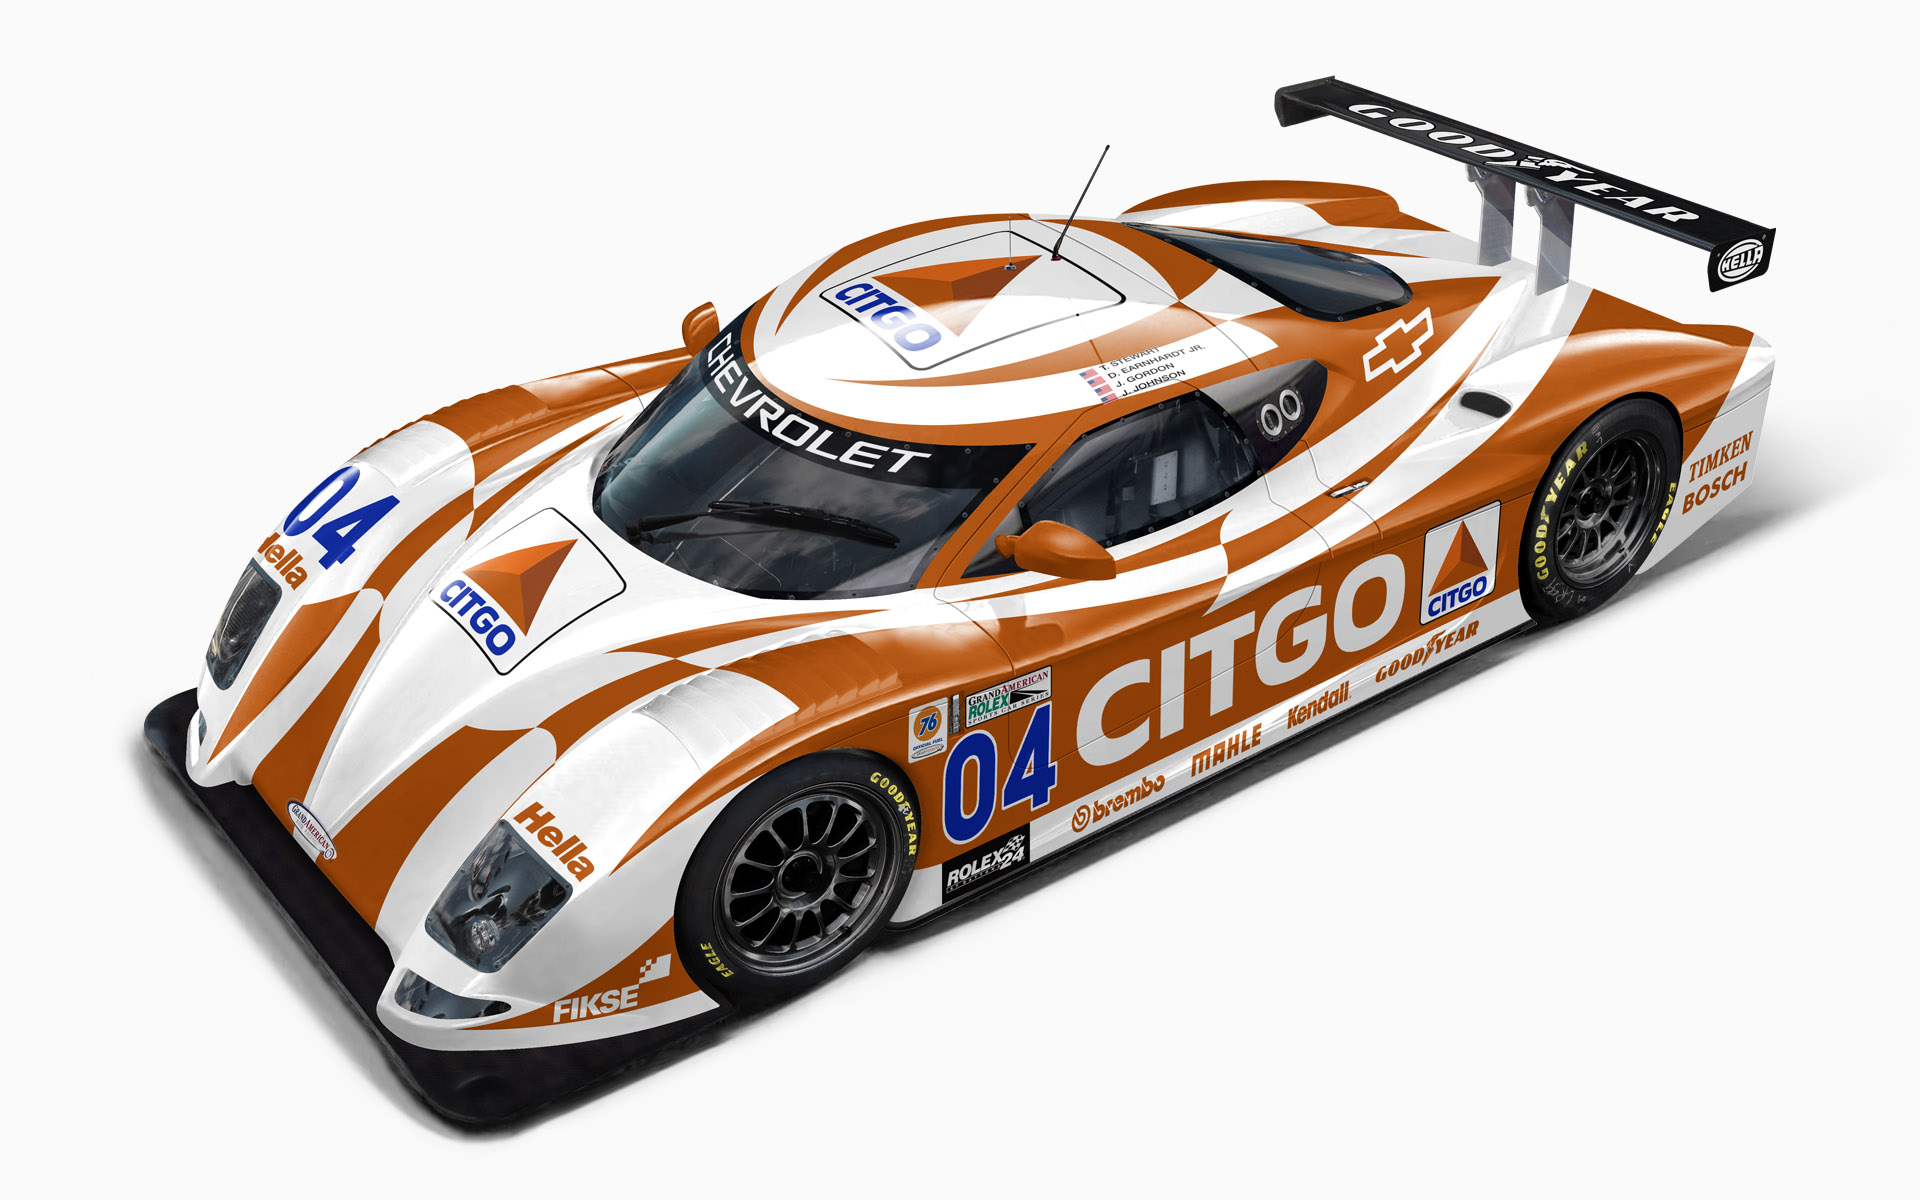 2005 Citgo Racing Chevy Crawford Daytona Prototype Livery Visualization